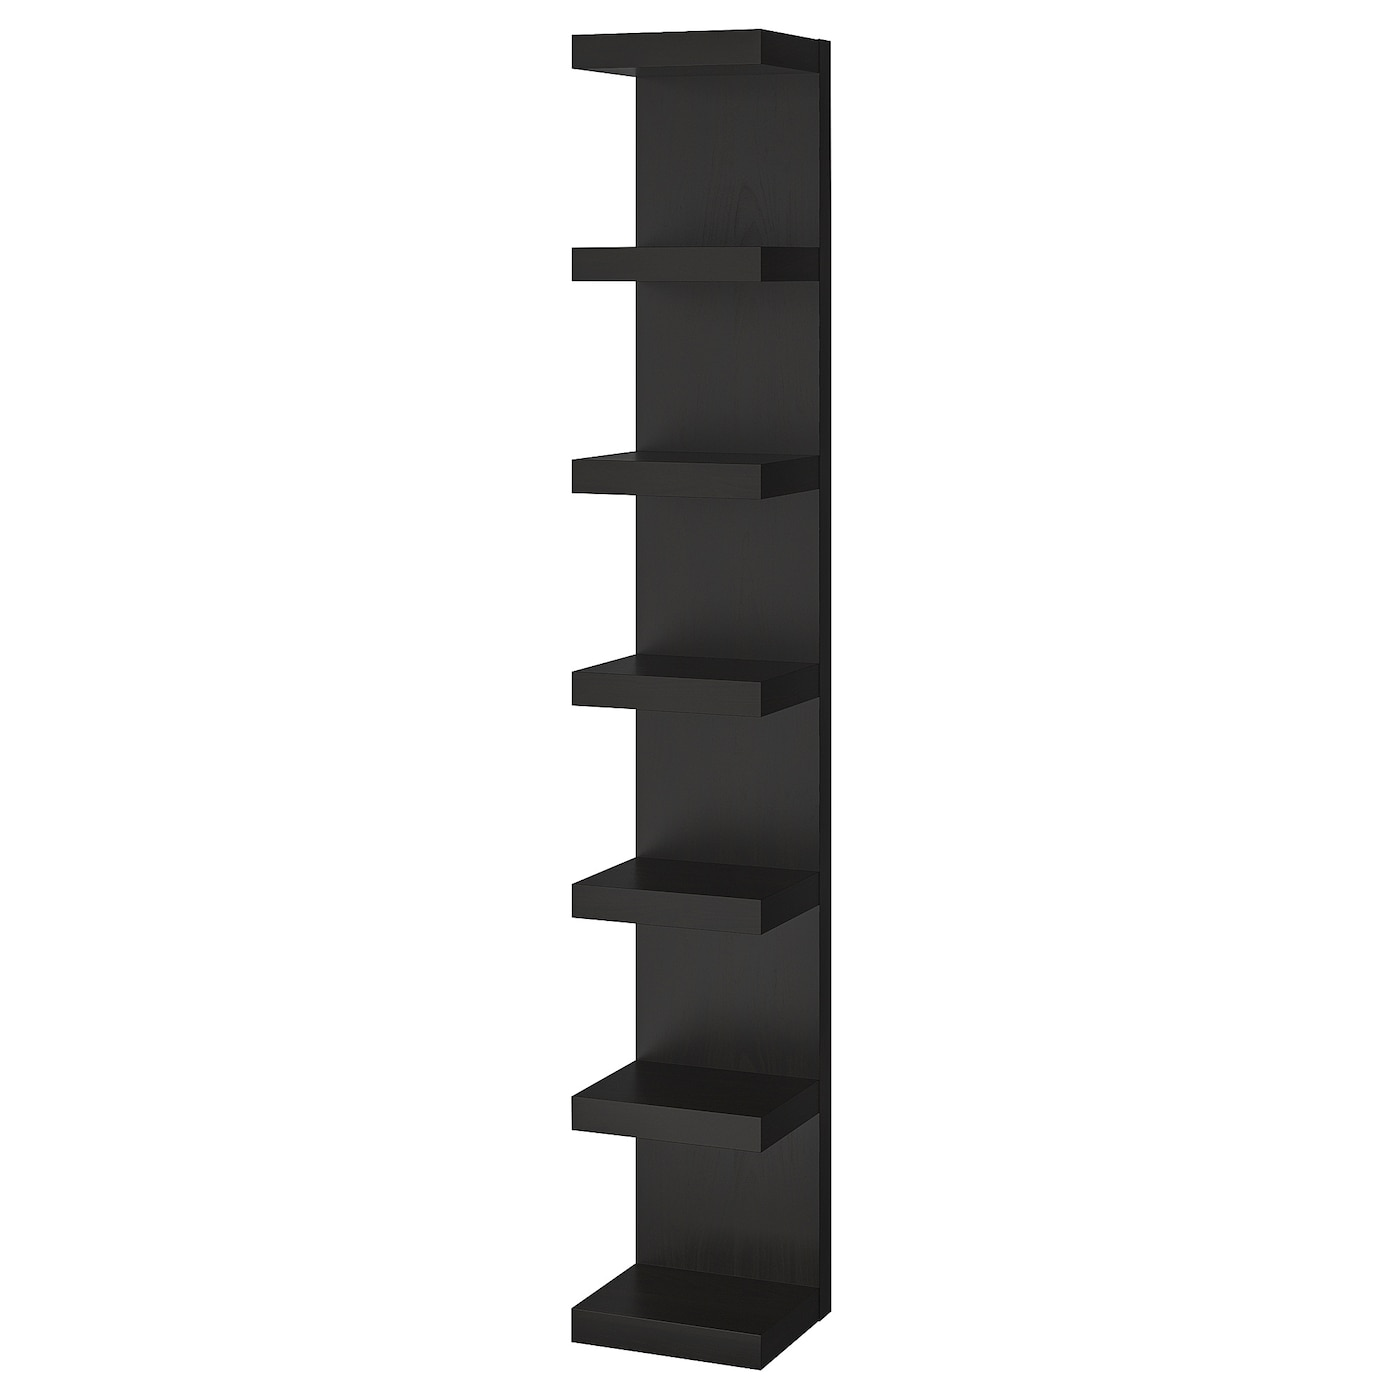 Lack Wall Shelf Unit Black Brown Ikea